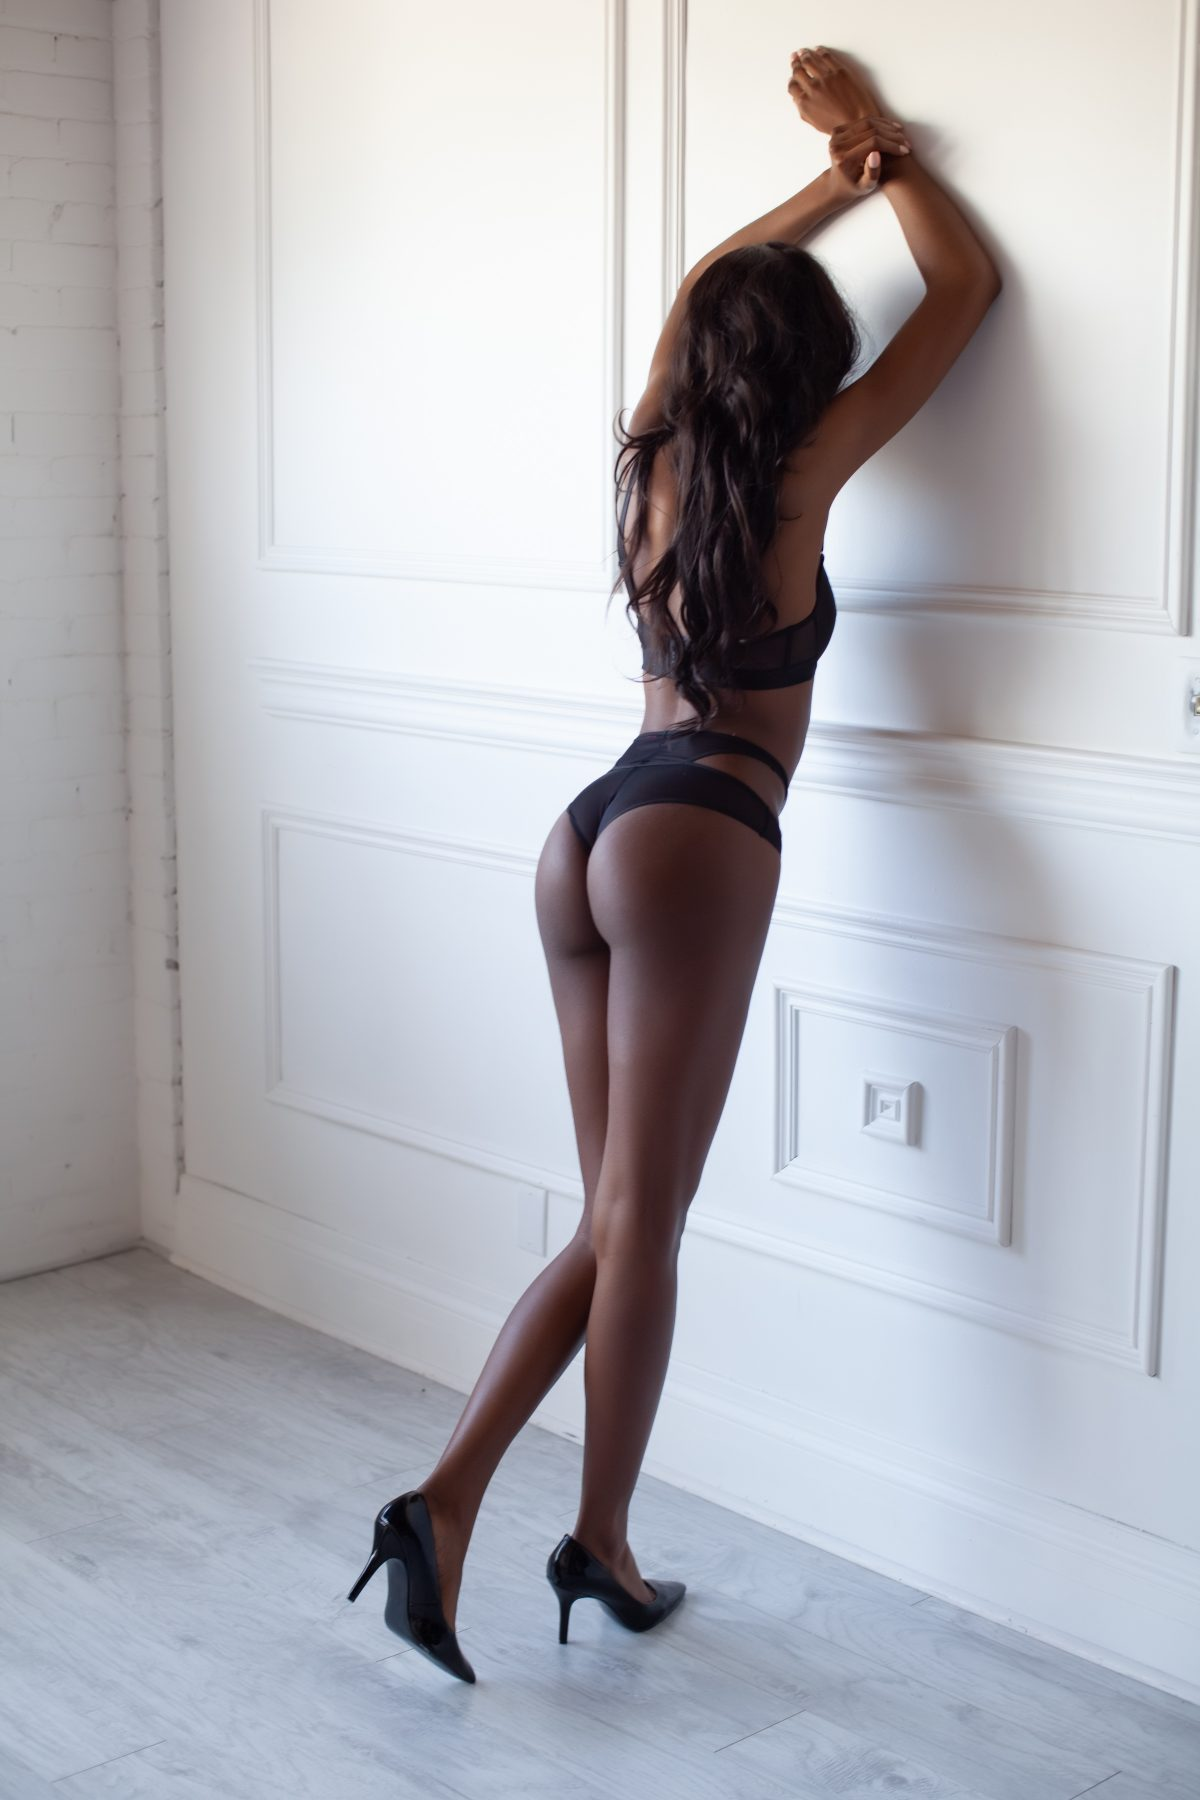 Toronto escorts companion upscale Micha Duo Couple-friendly Disability-friendly Non-smoking Young Slender Tall Natural Brunette Exotic Small